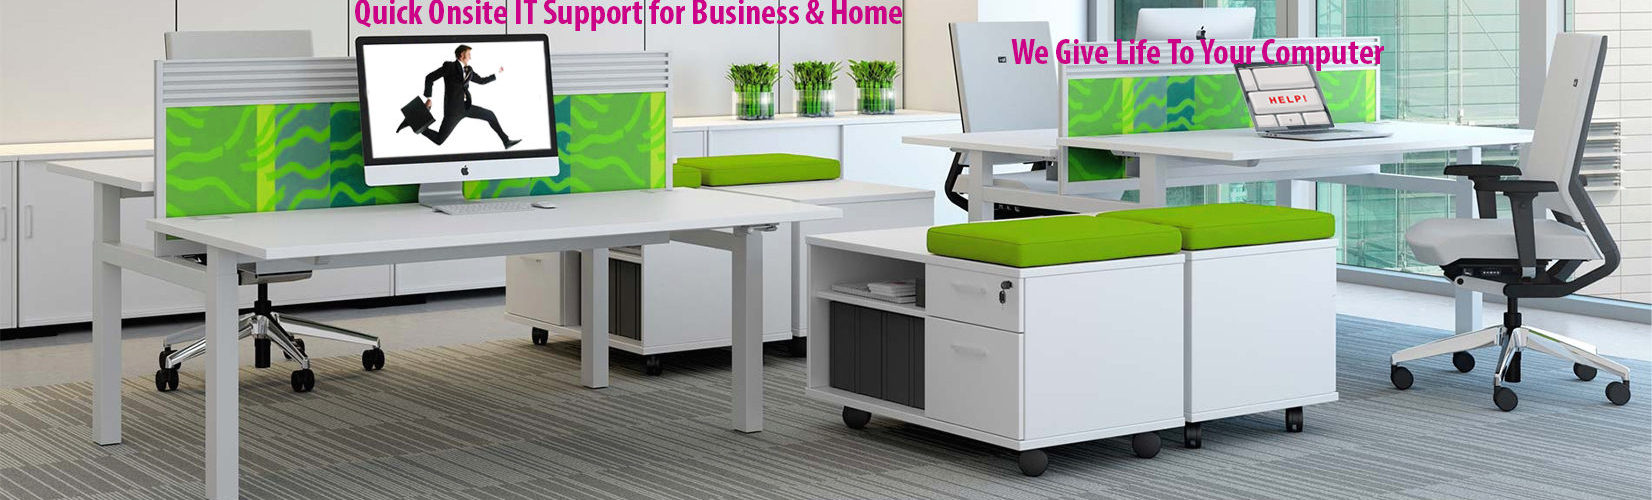 Onsite IT Support Services in Dubai for Business & Home